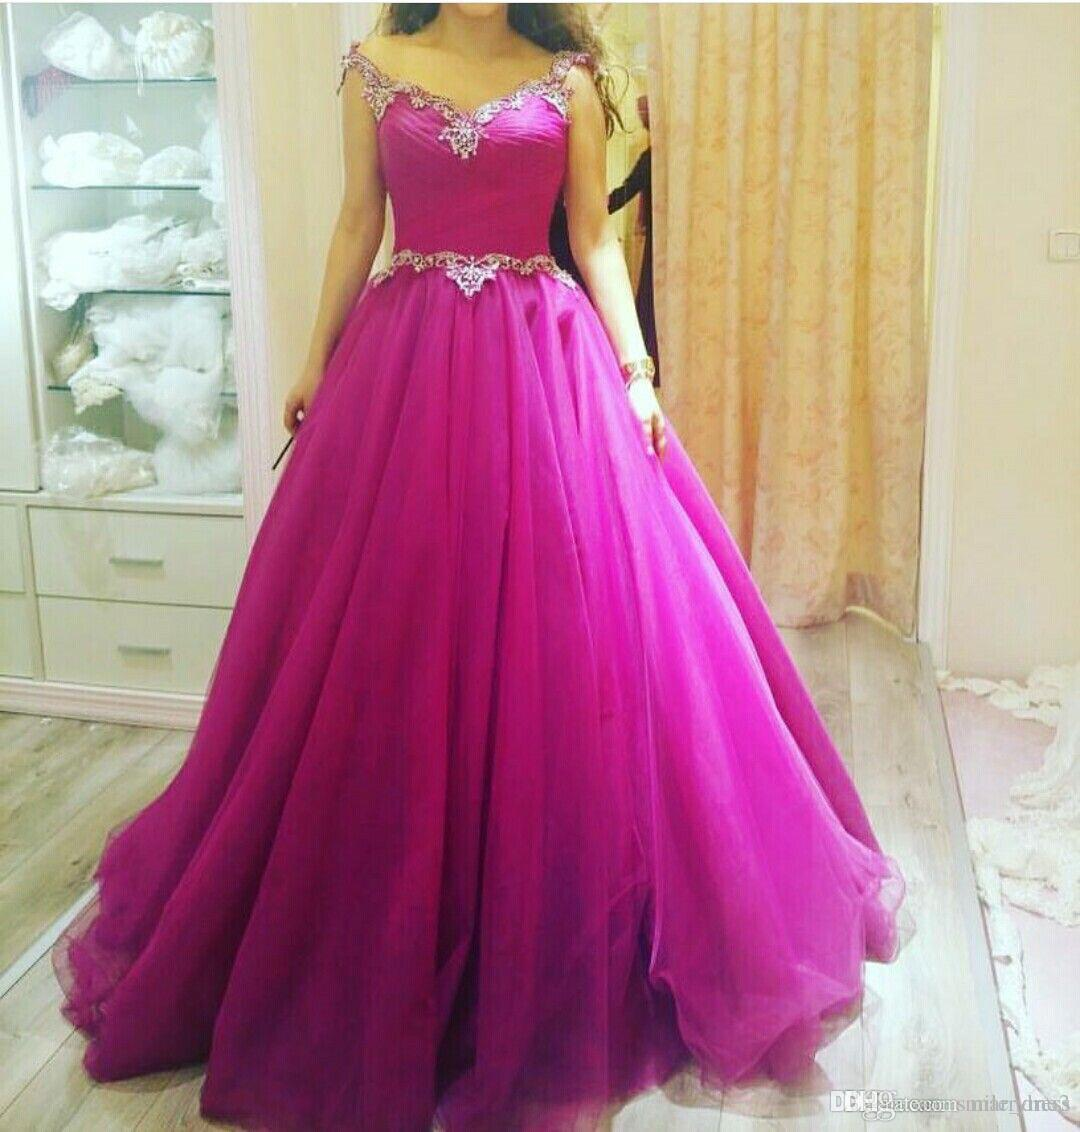 2018 New Fuchsia Ball Gown Prom Dresses Off The Shoulder Organza ...